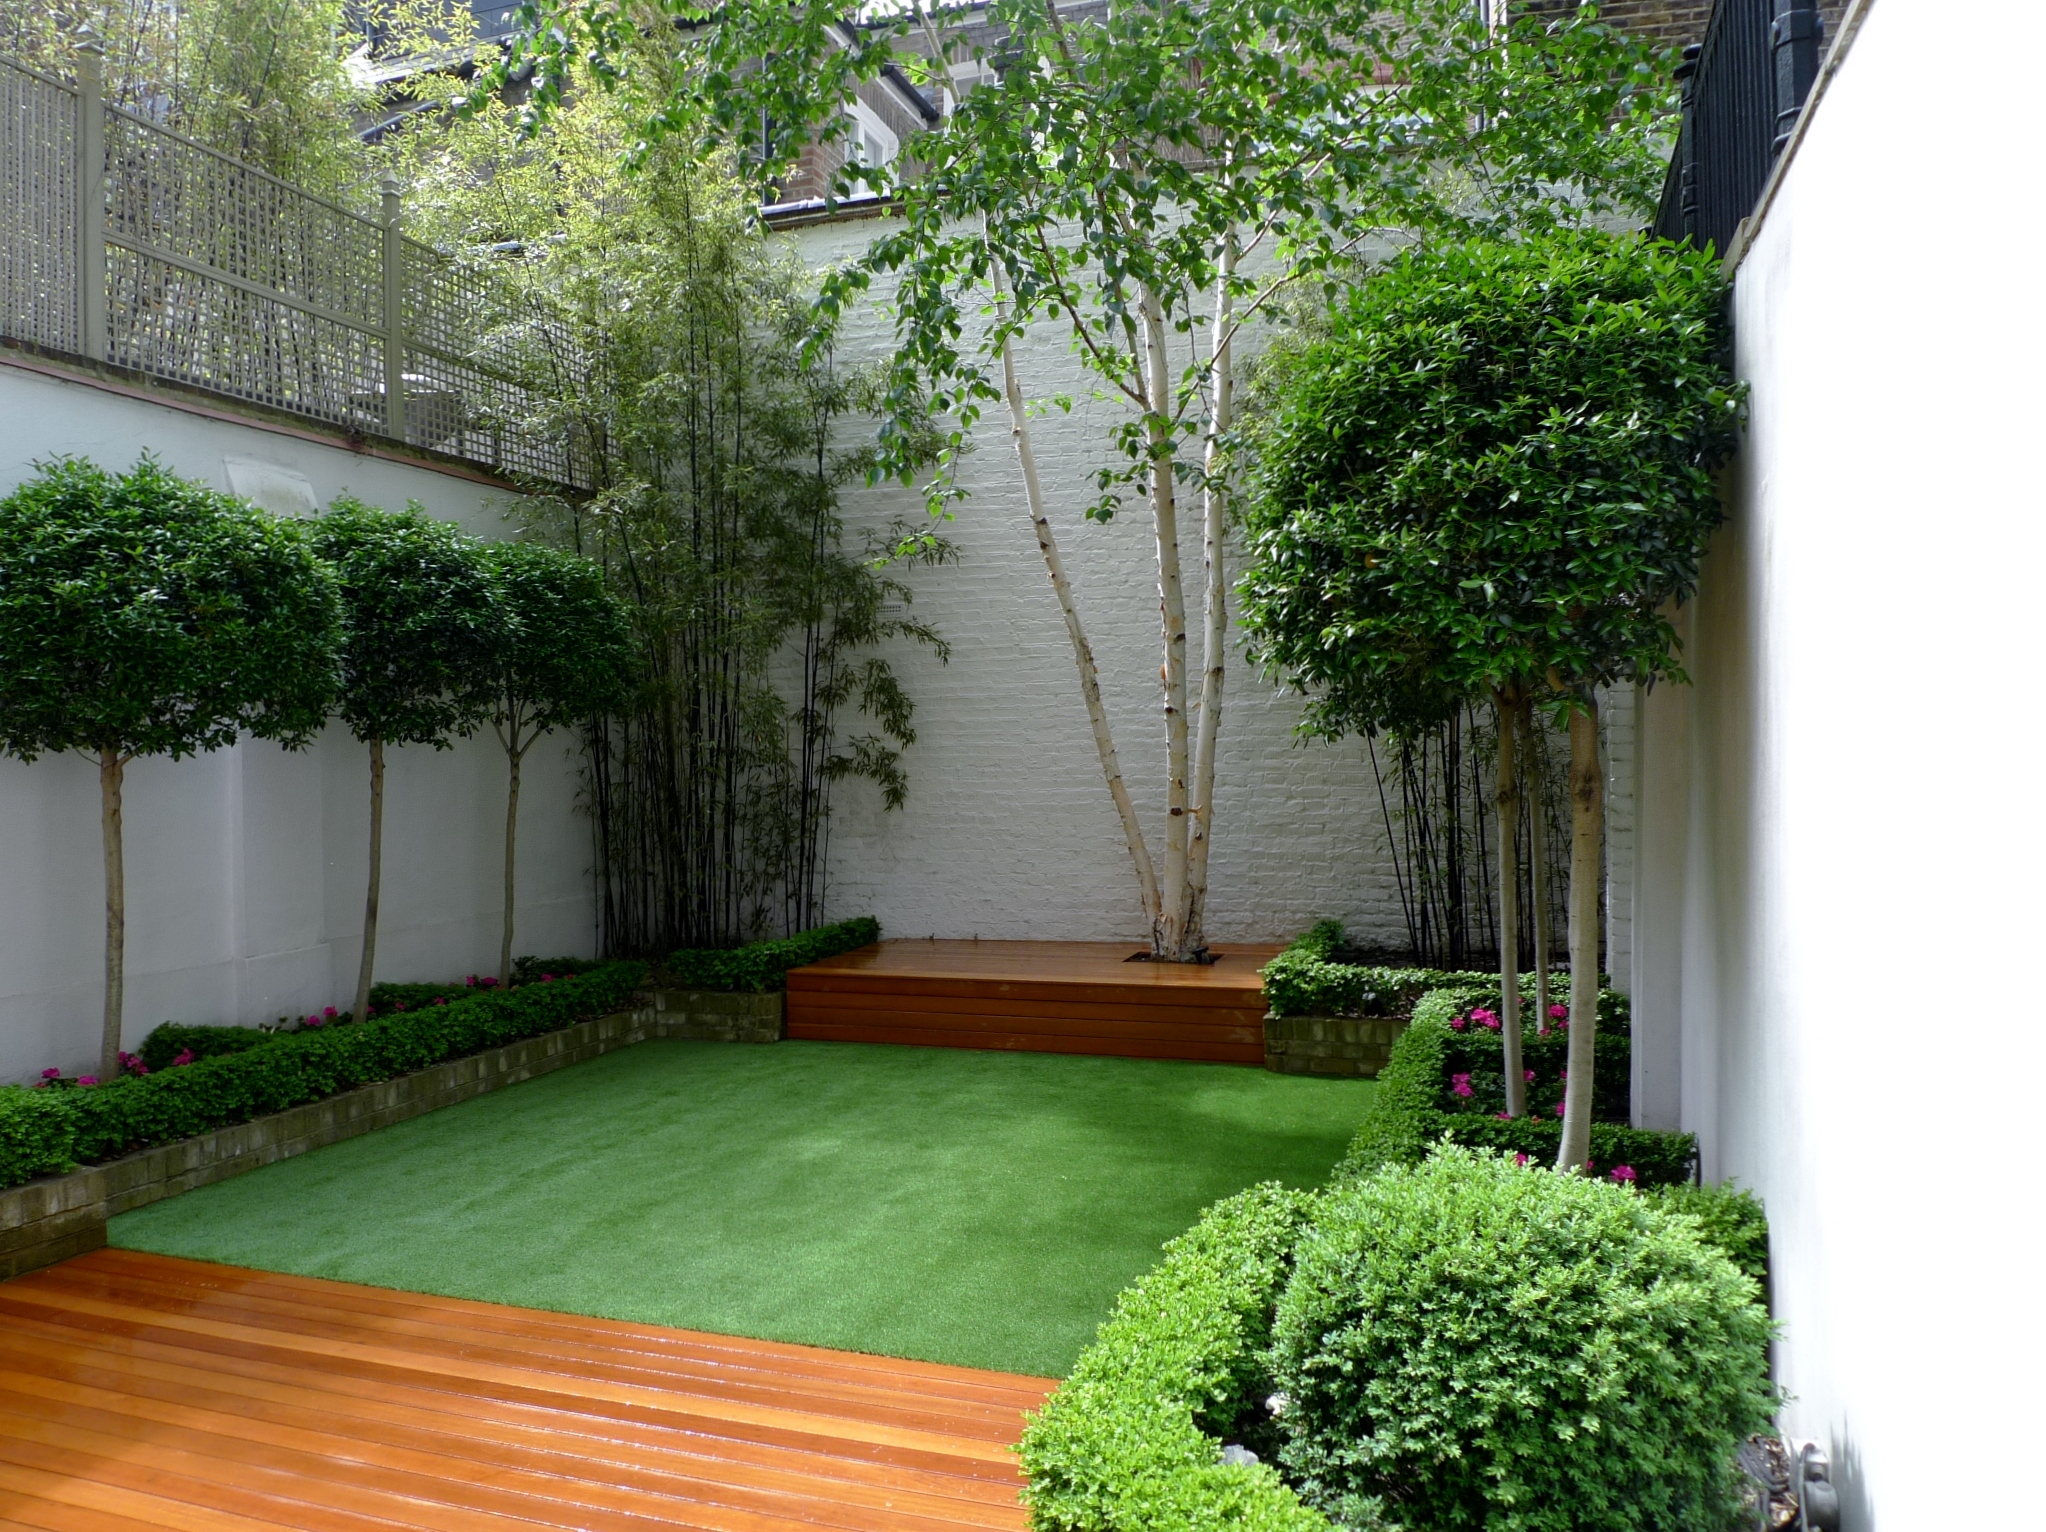 Chelsea garden 2015 design low maintenance artificial for Garden decking designs pictures